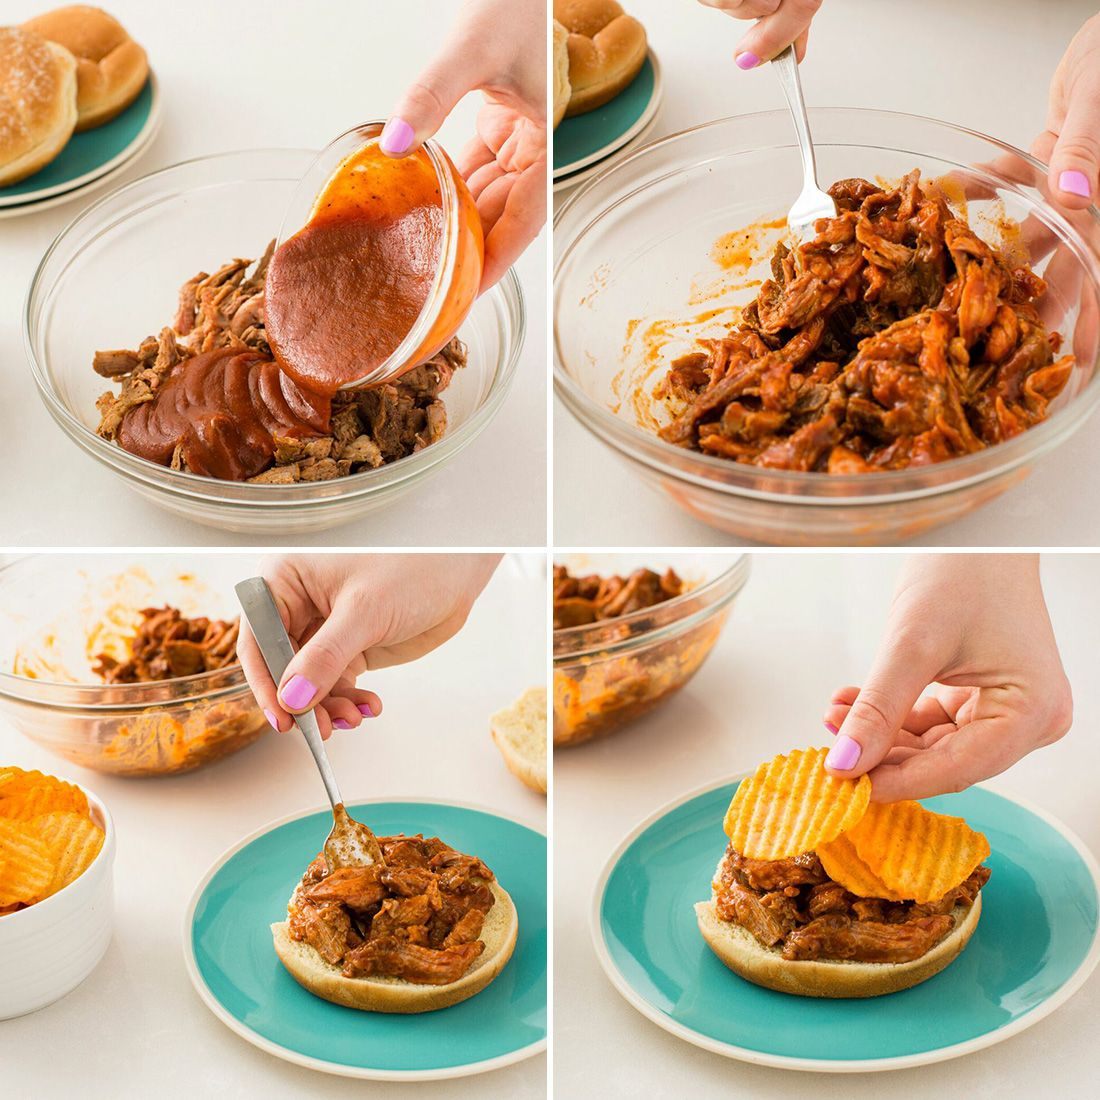 You need to try this pulled pork recipe.